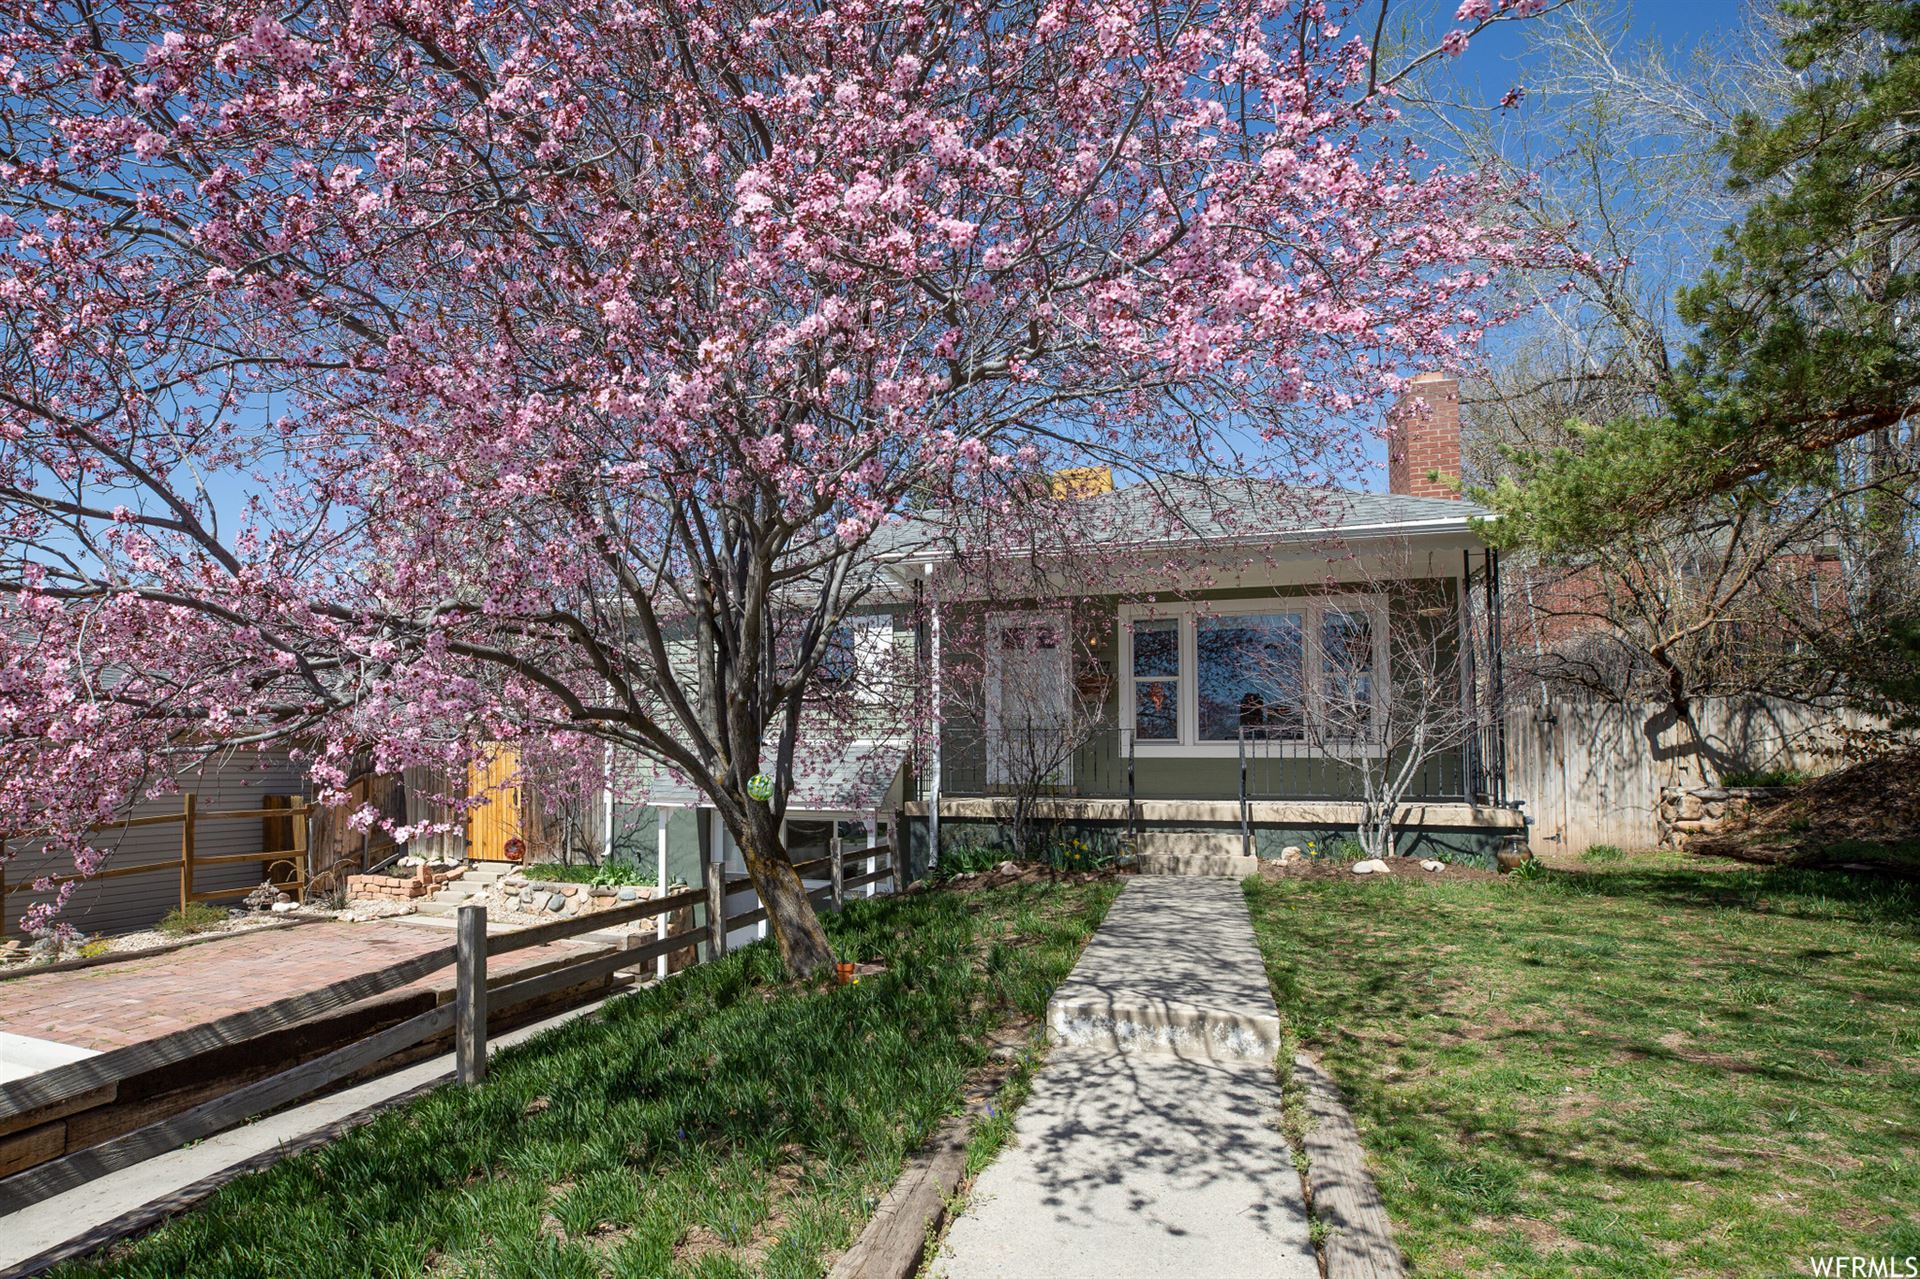 Photo of 2677 E 2900 S, Salt Lake City, UT 84109 (MLS # 1734360)